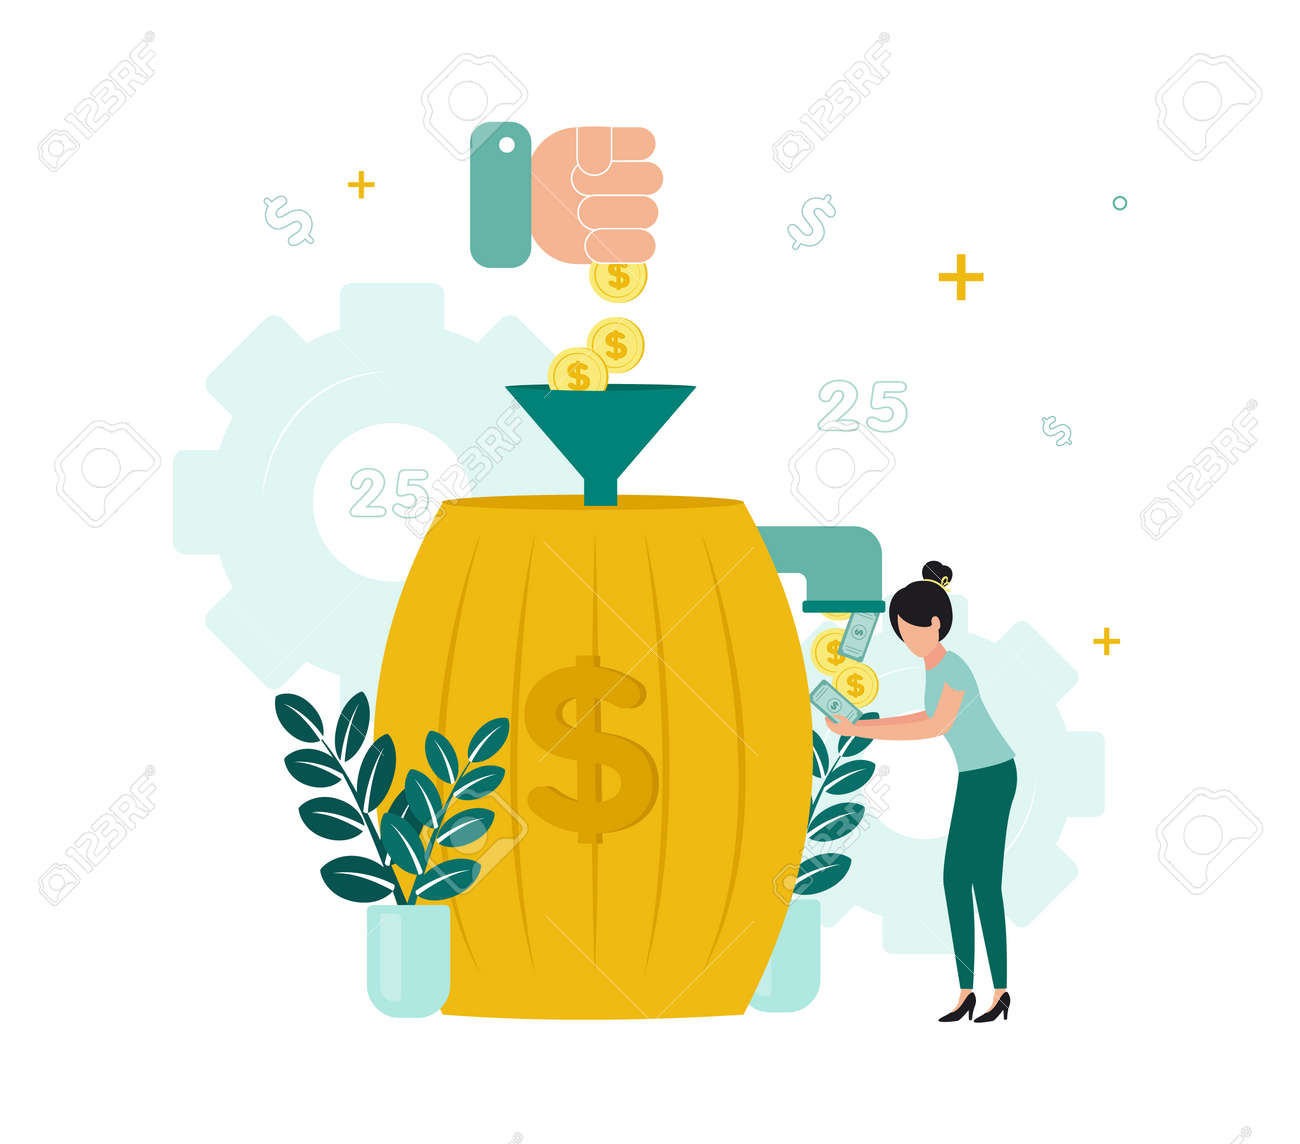 Finance. Financial intermediaries. A hand throws coins into a barrel through a funnel, from a barrel a tap, from which money is poured into a woman's hands. Vector illustration. - 159133313